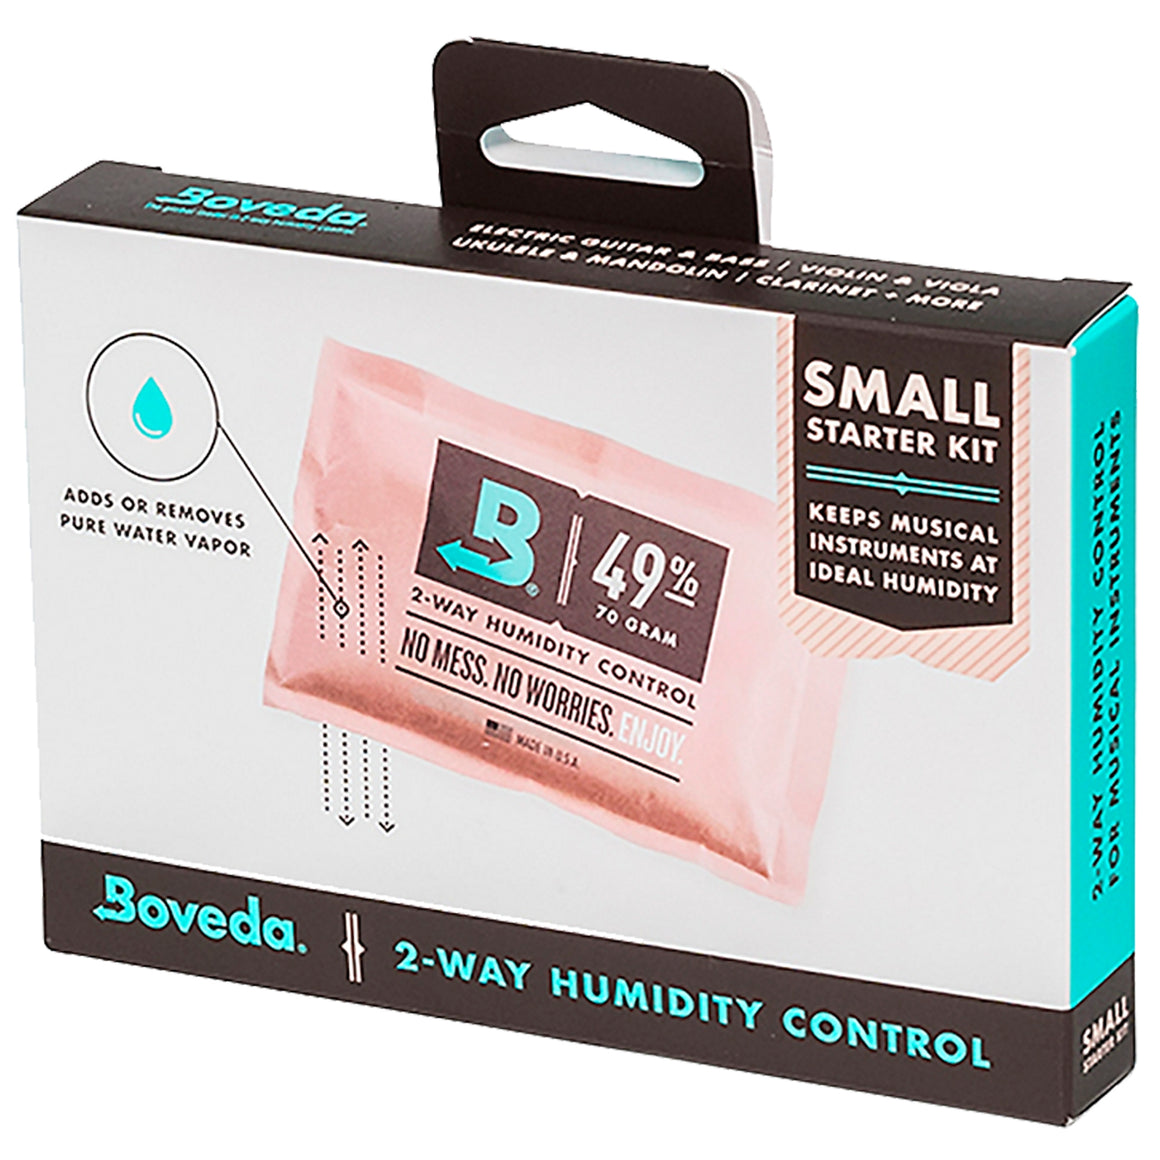 Boveda BVMFKSM Small 2-Way Humidity Control Starter Kit